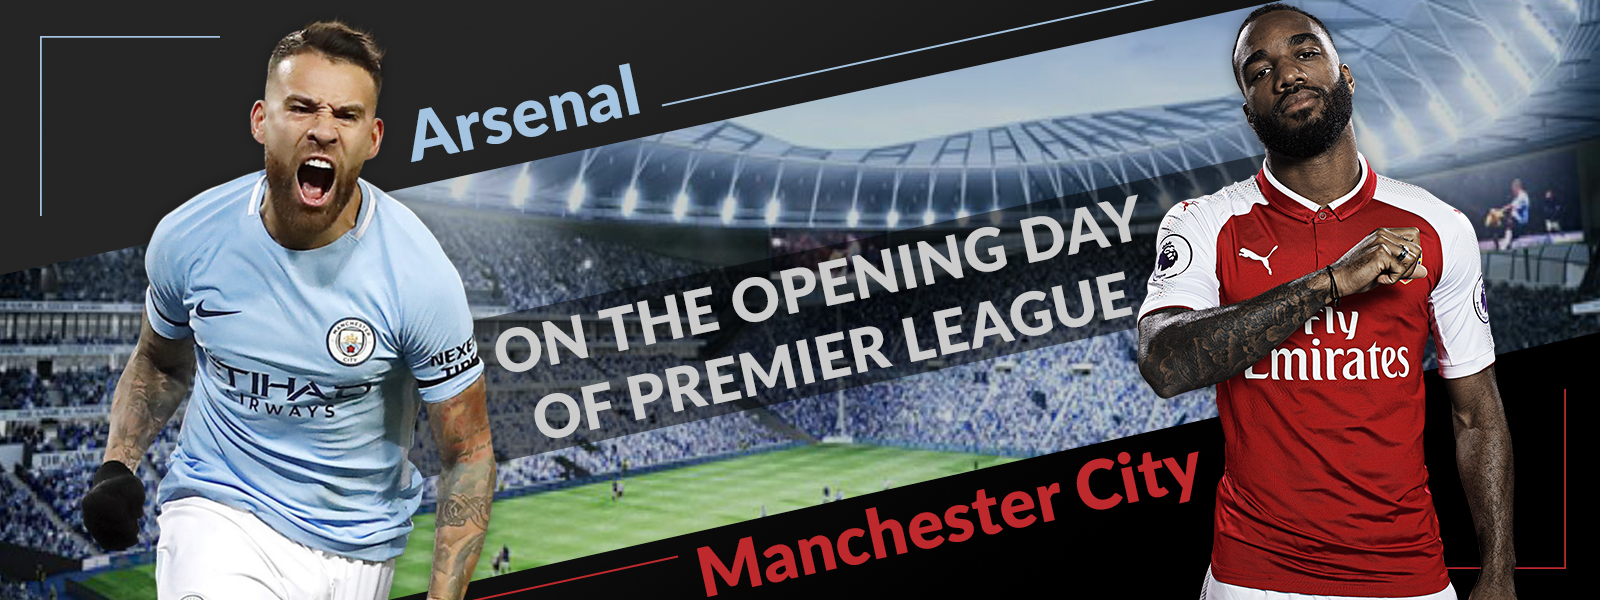 Tips: Arsenal vs Manchester City on the opening day of Premier League